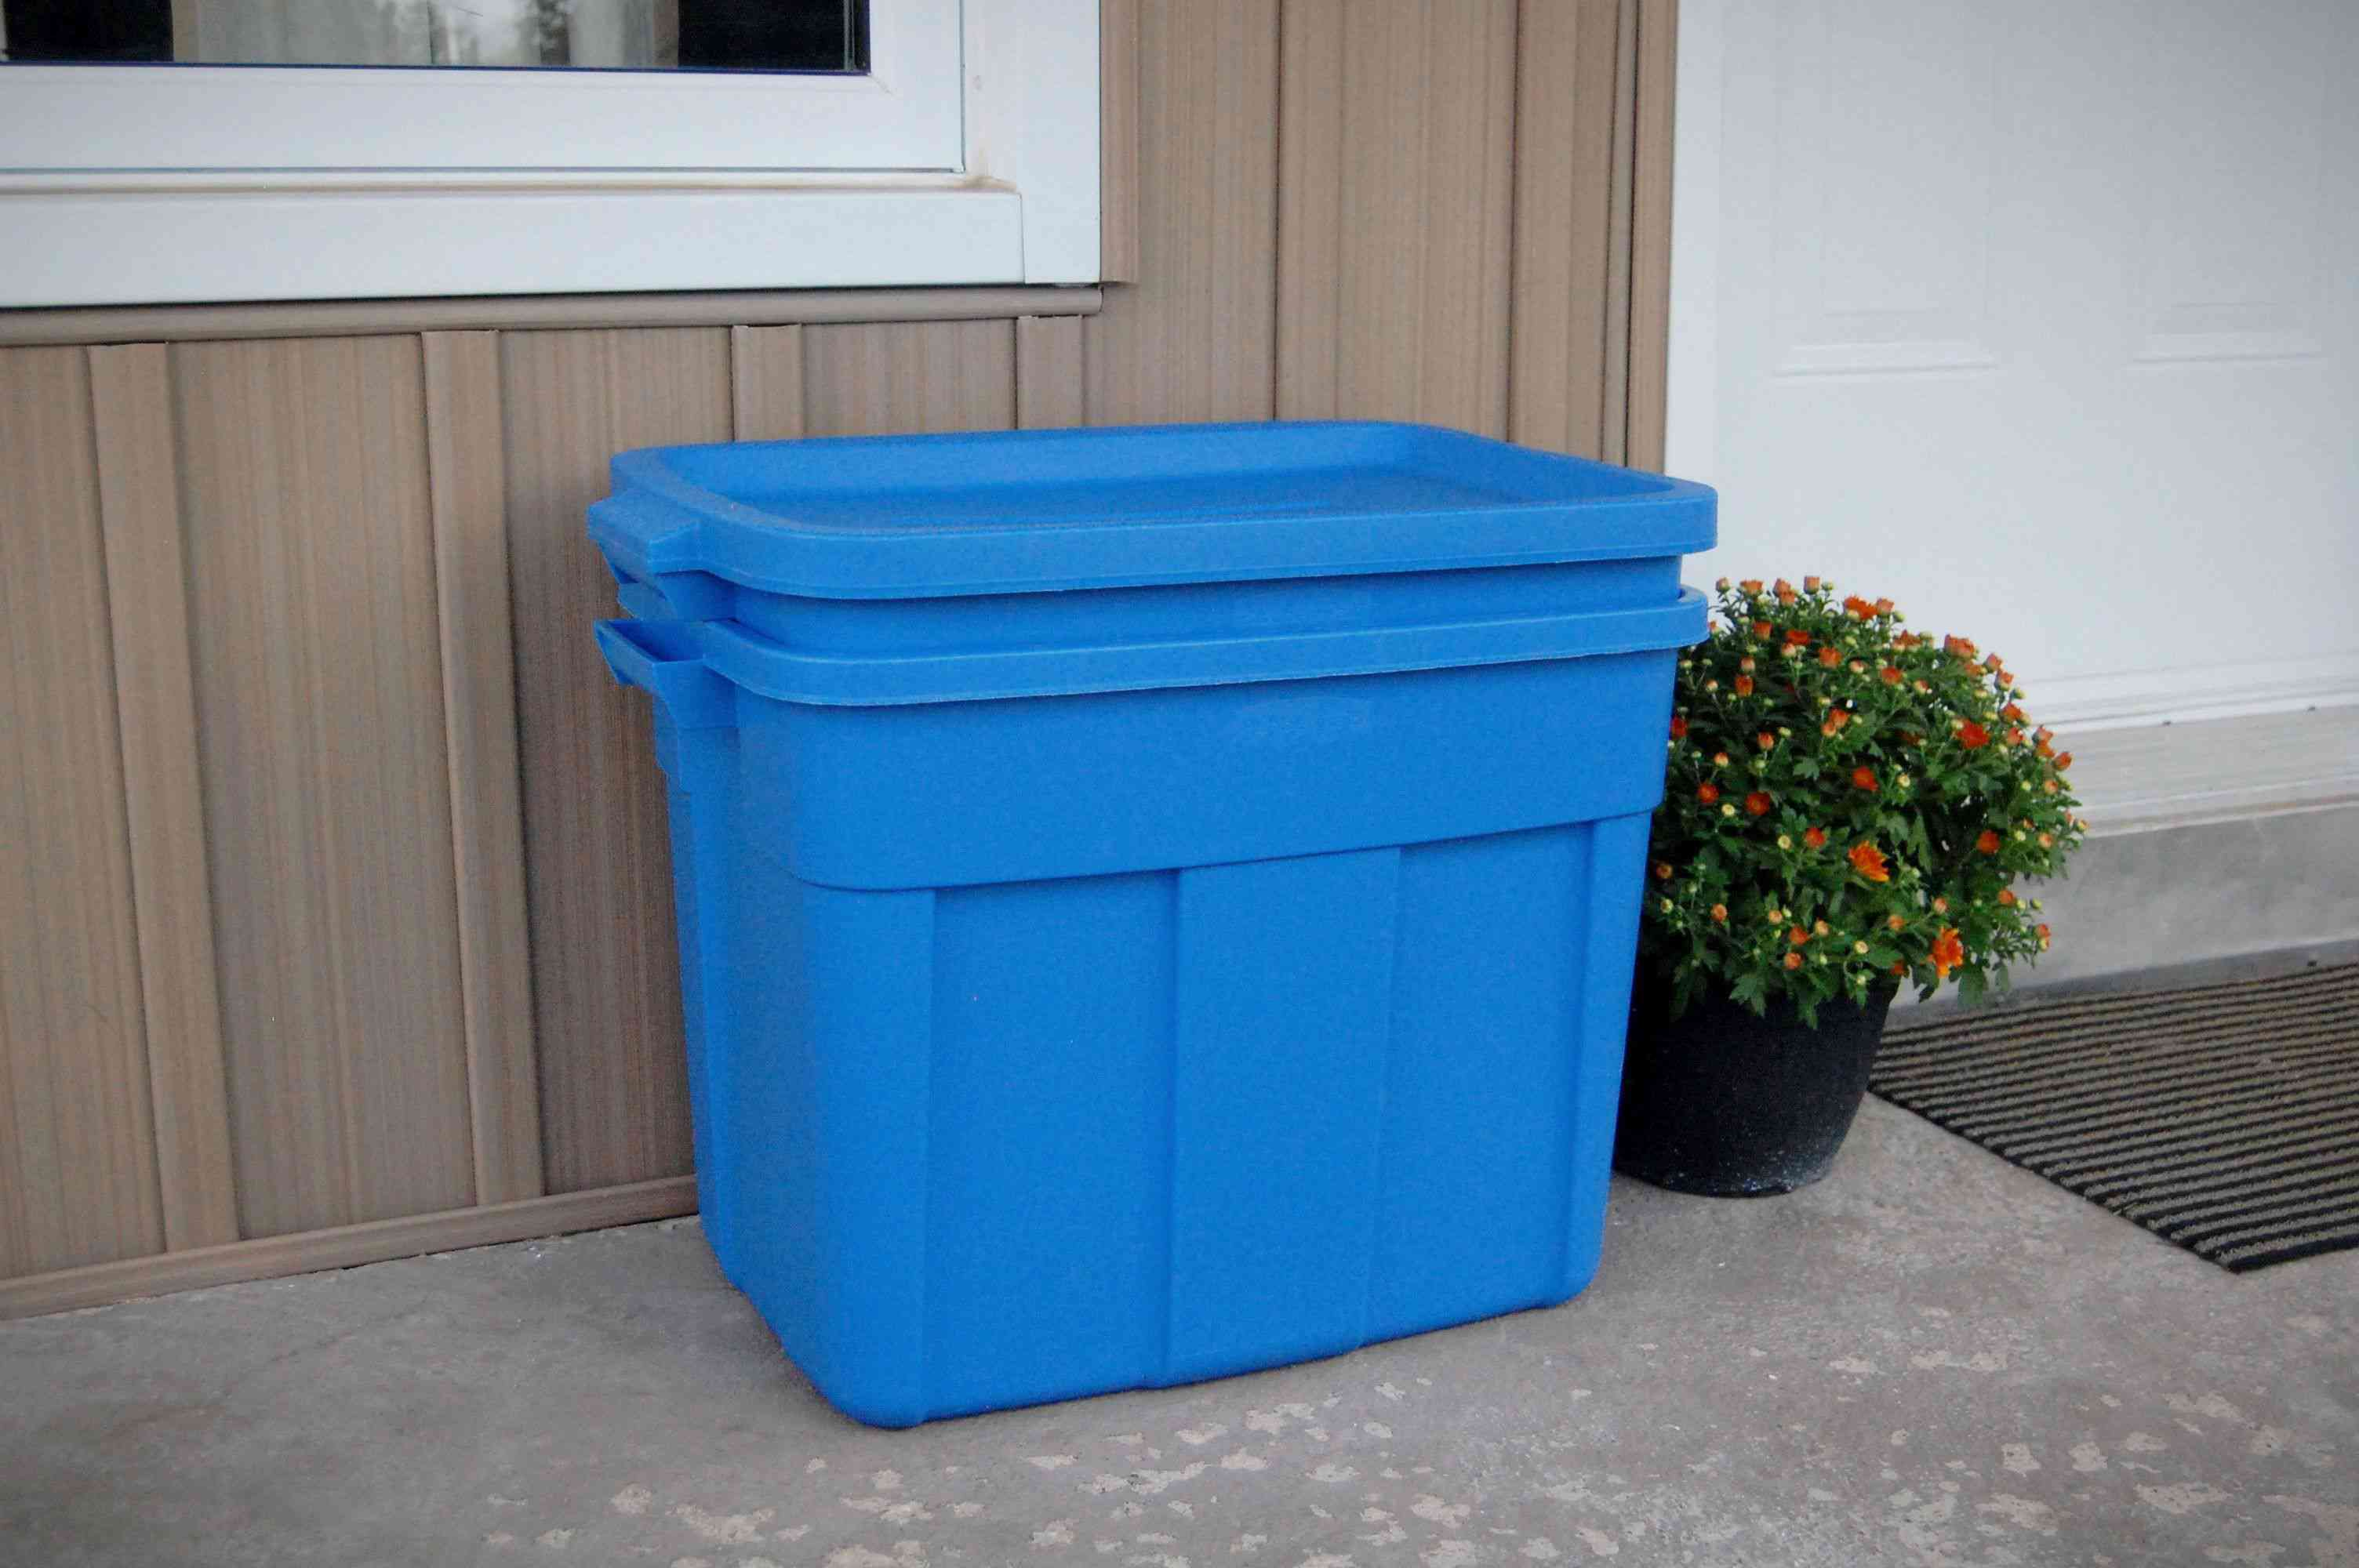 Deciding on a location for your compost bin